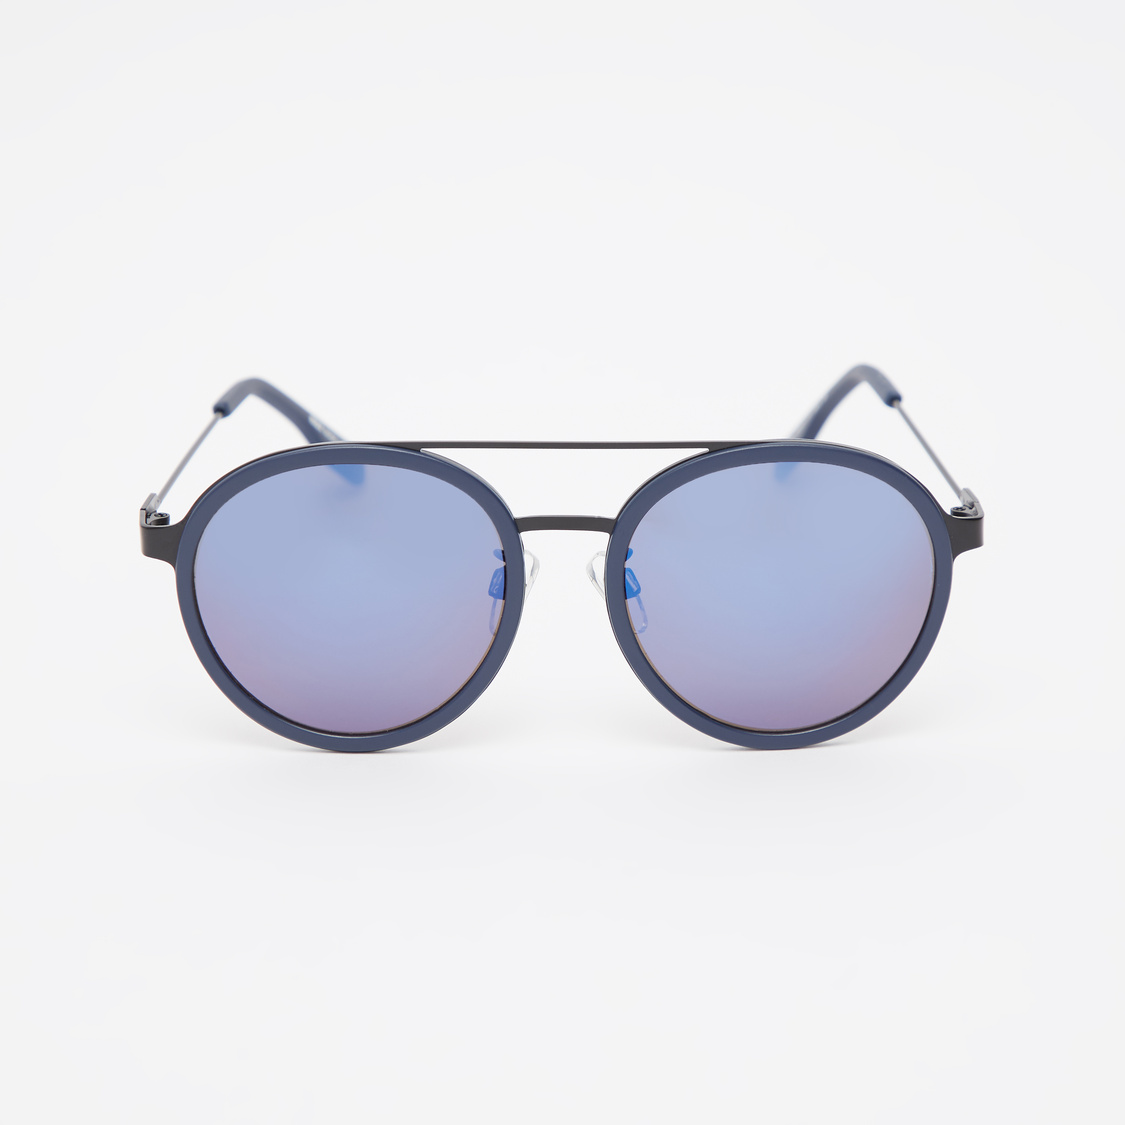 Full Rim Round Sunglasses with Nose Pads and Temple Tips